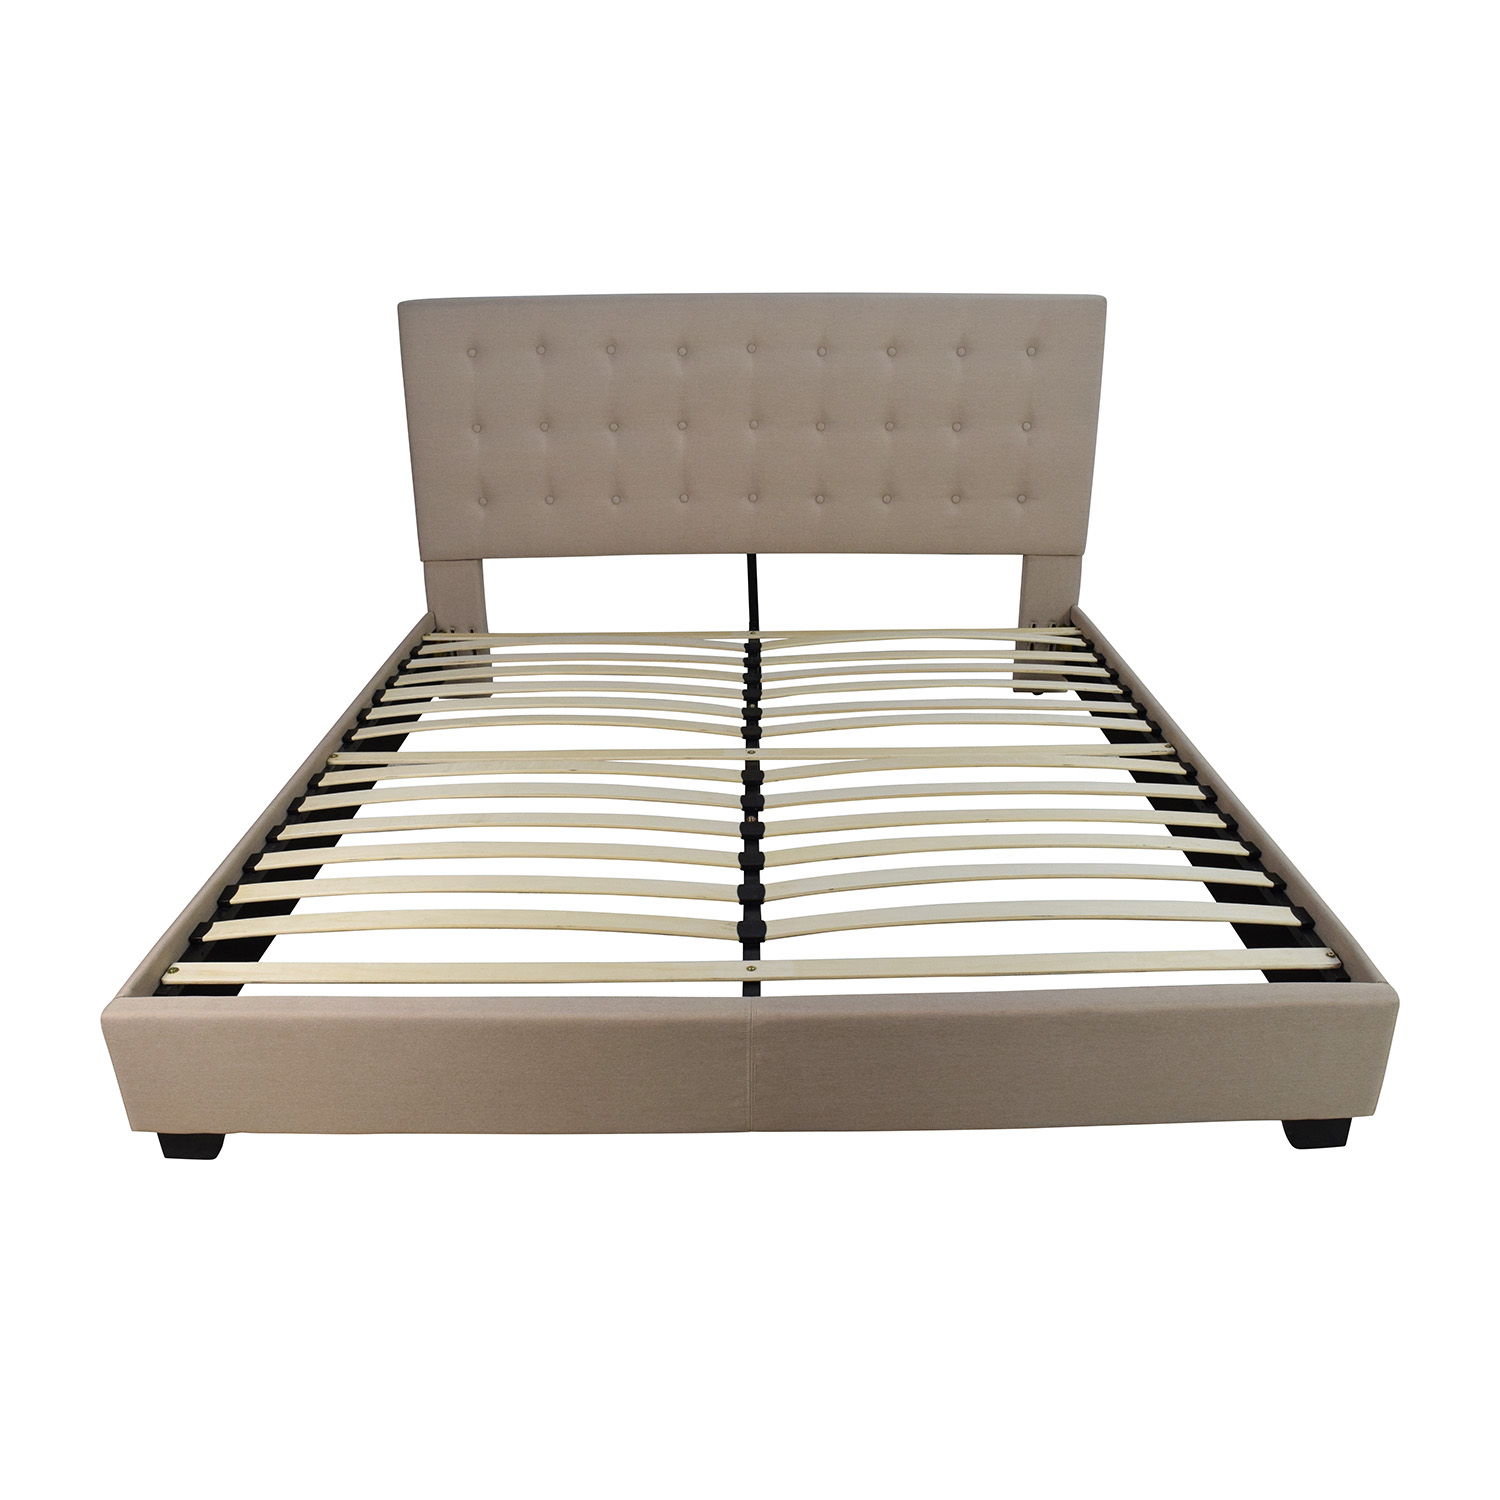 44 off king size taupe cloth bed frame beds for King size bunk bed